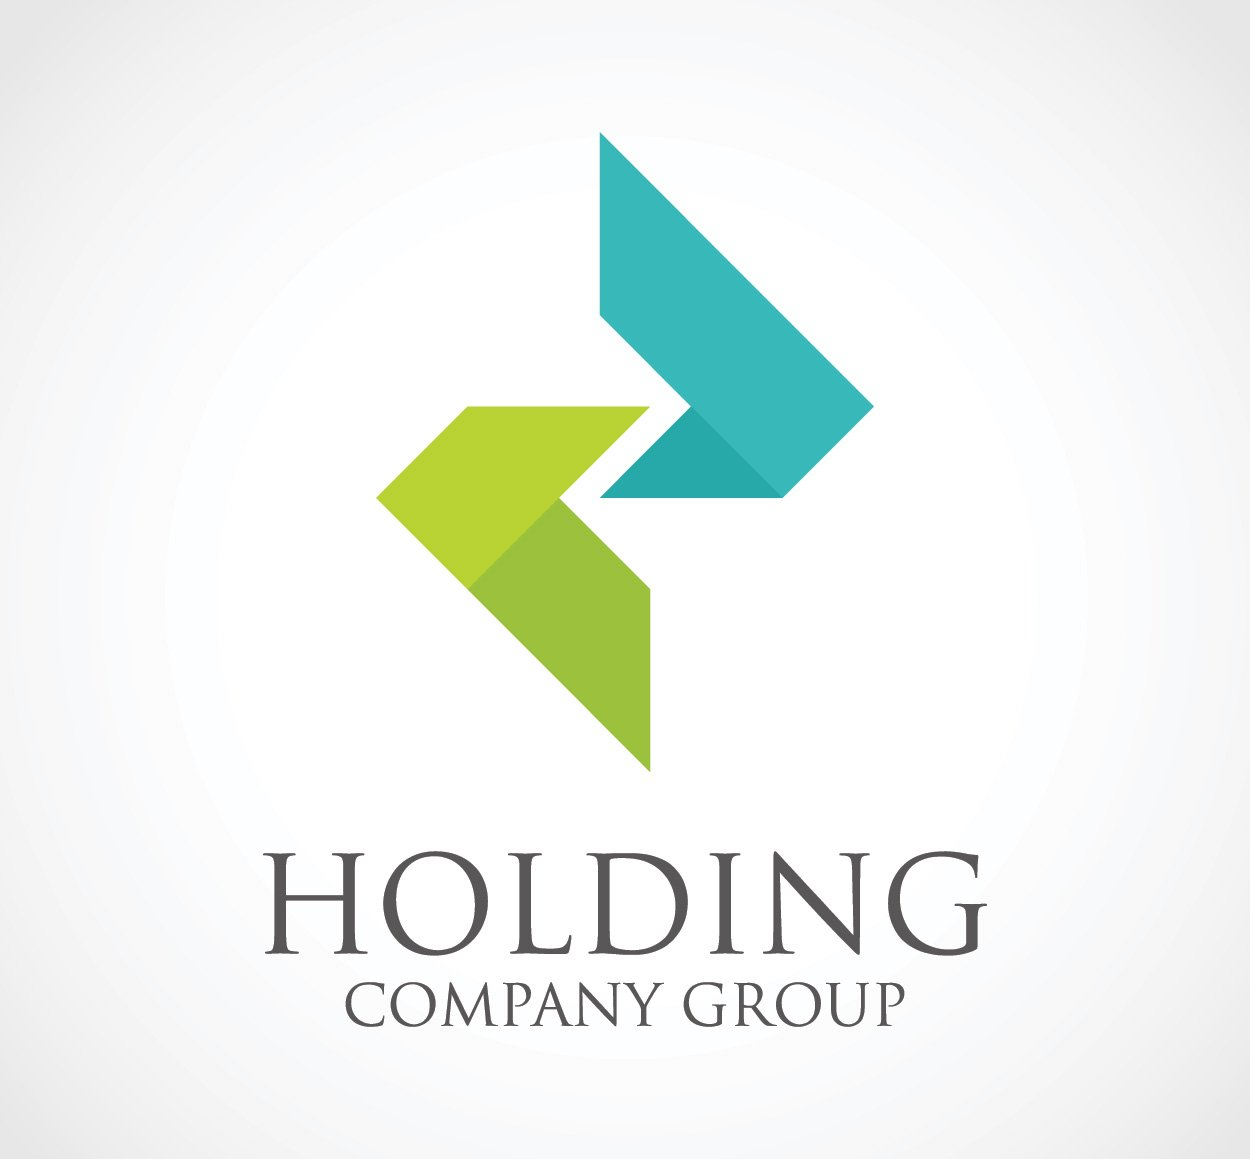 WIDENING OF INDUSTRIAL HOLDING GROUPS AND NEW DEFINITION OF INDUSTRIAL HOLDING